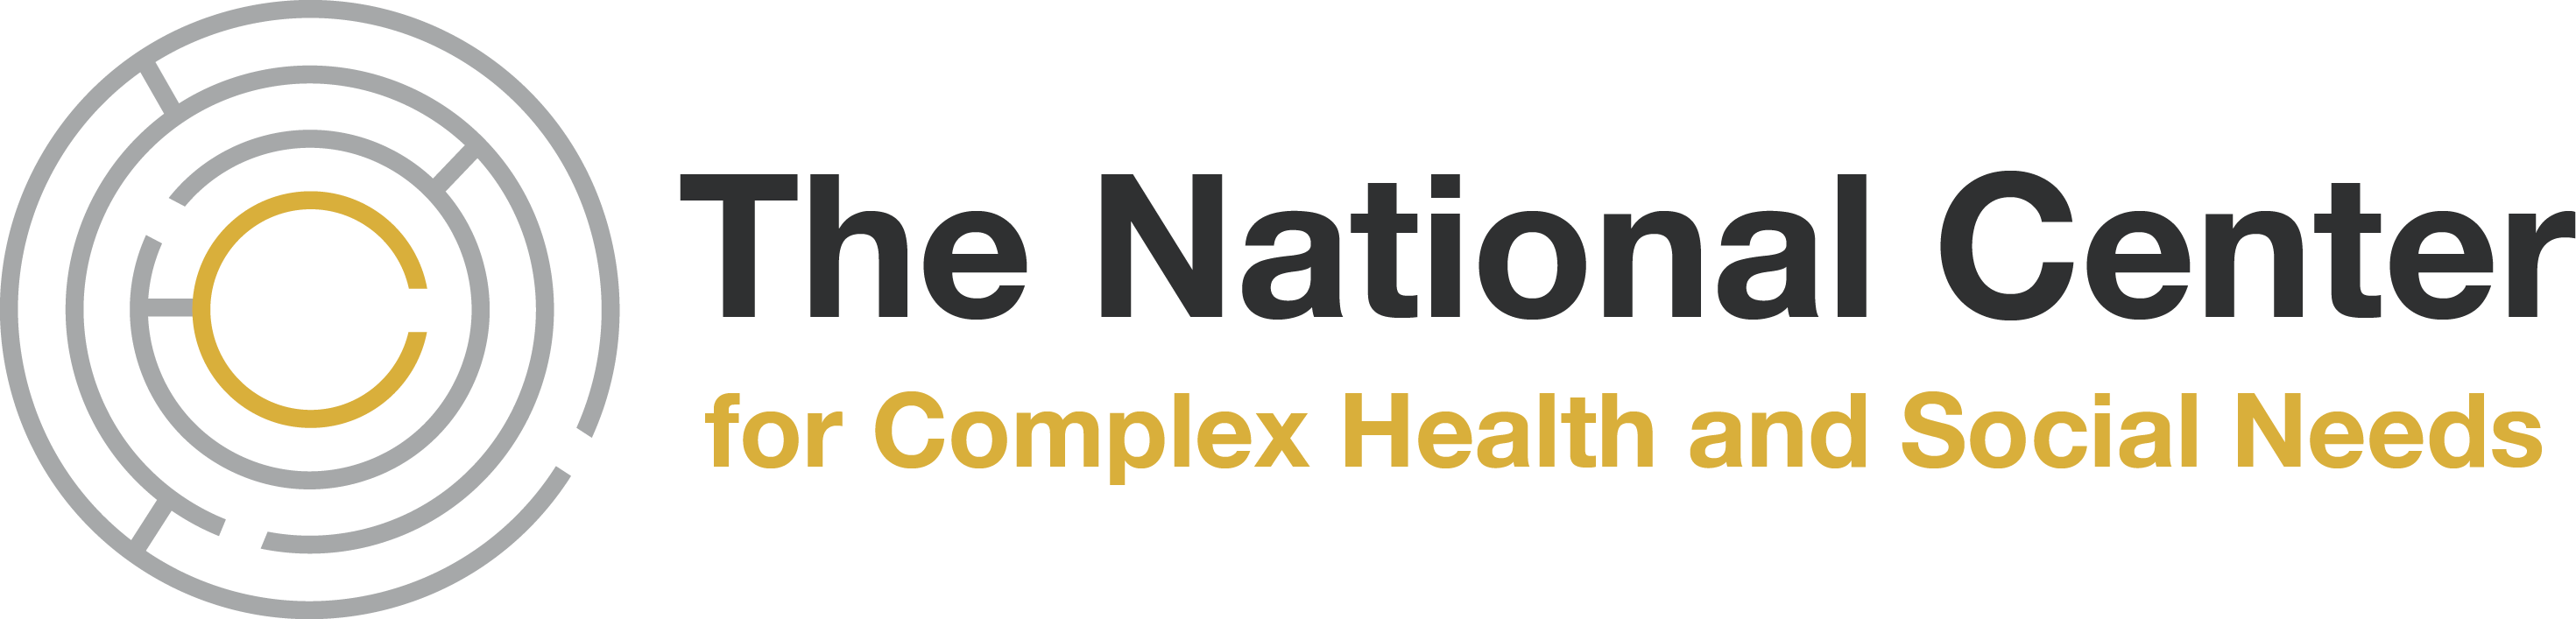 National Center for Complex Health and Social Needs